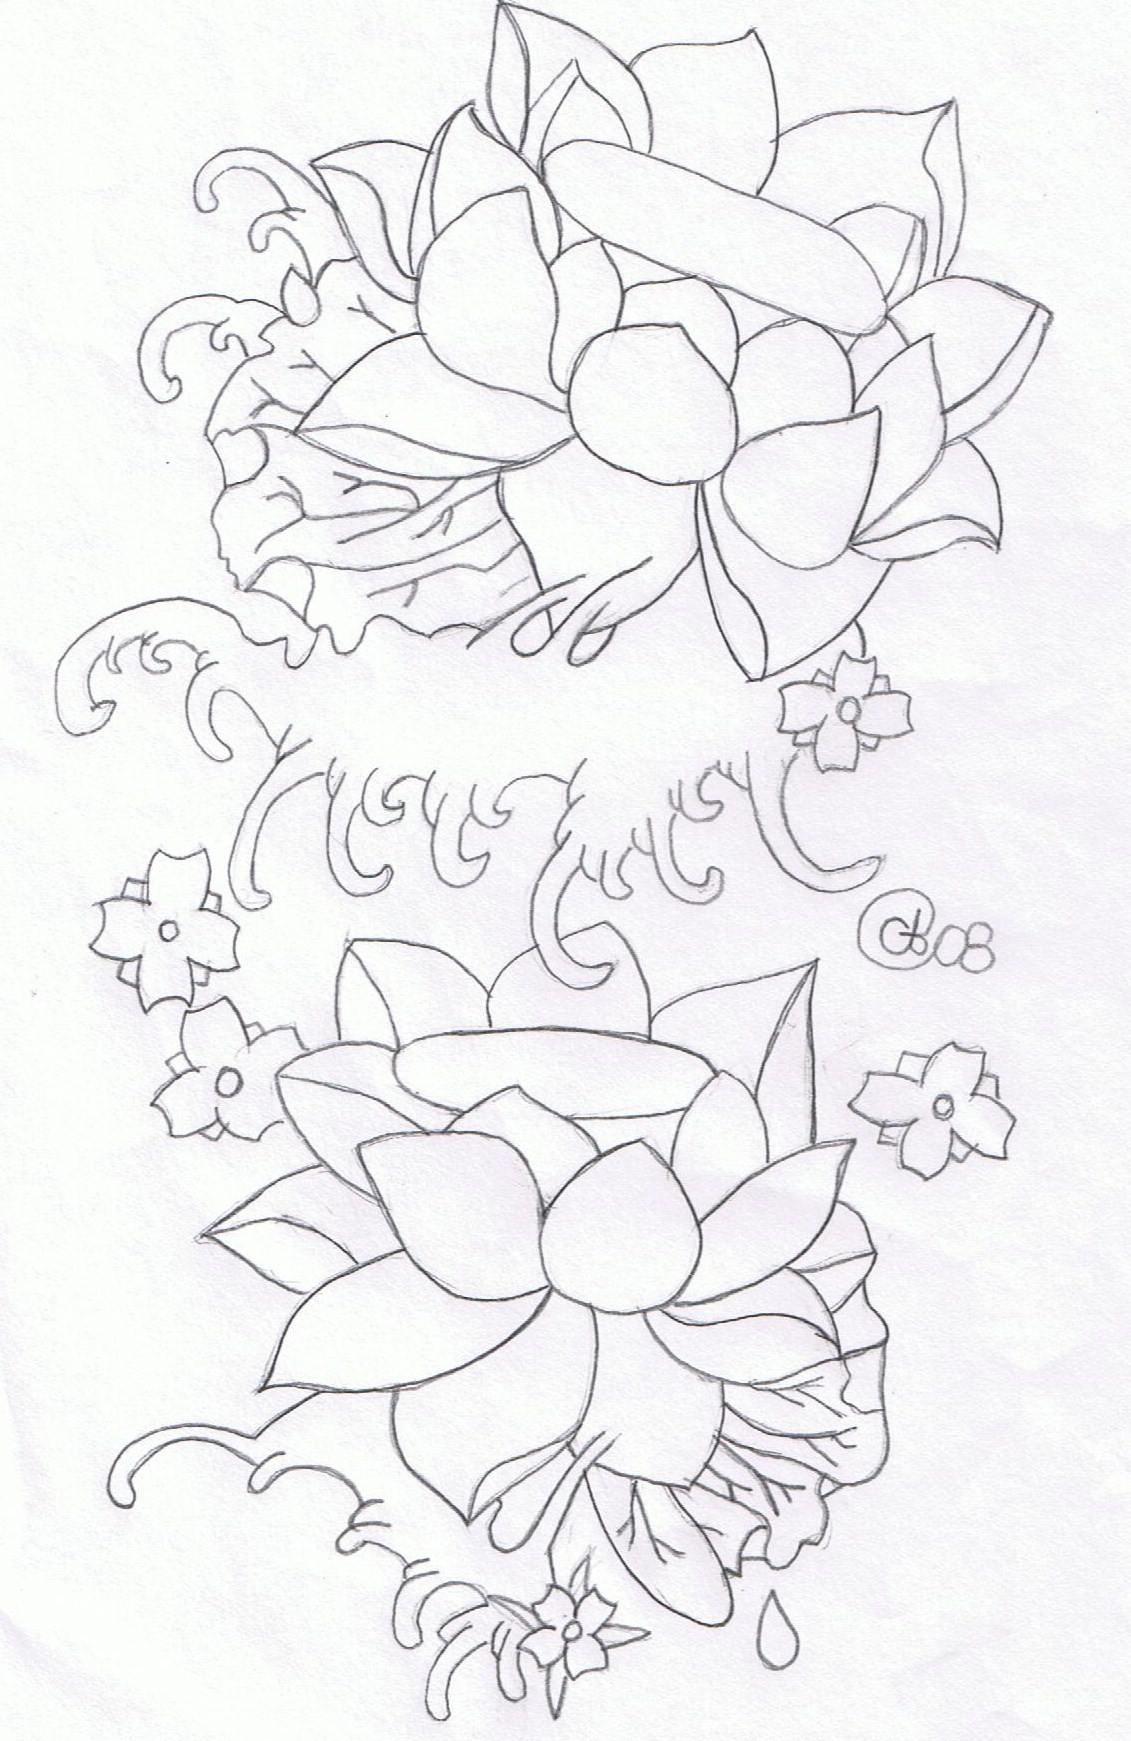 Water lotus flowers by cyndylouhous on deviantart water lotus flowers by cyndylouhous water lotus flowers by cyndylouhous izmirmasajfo